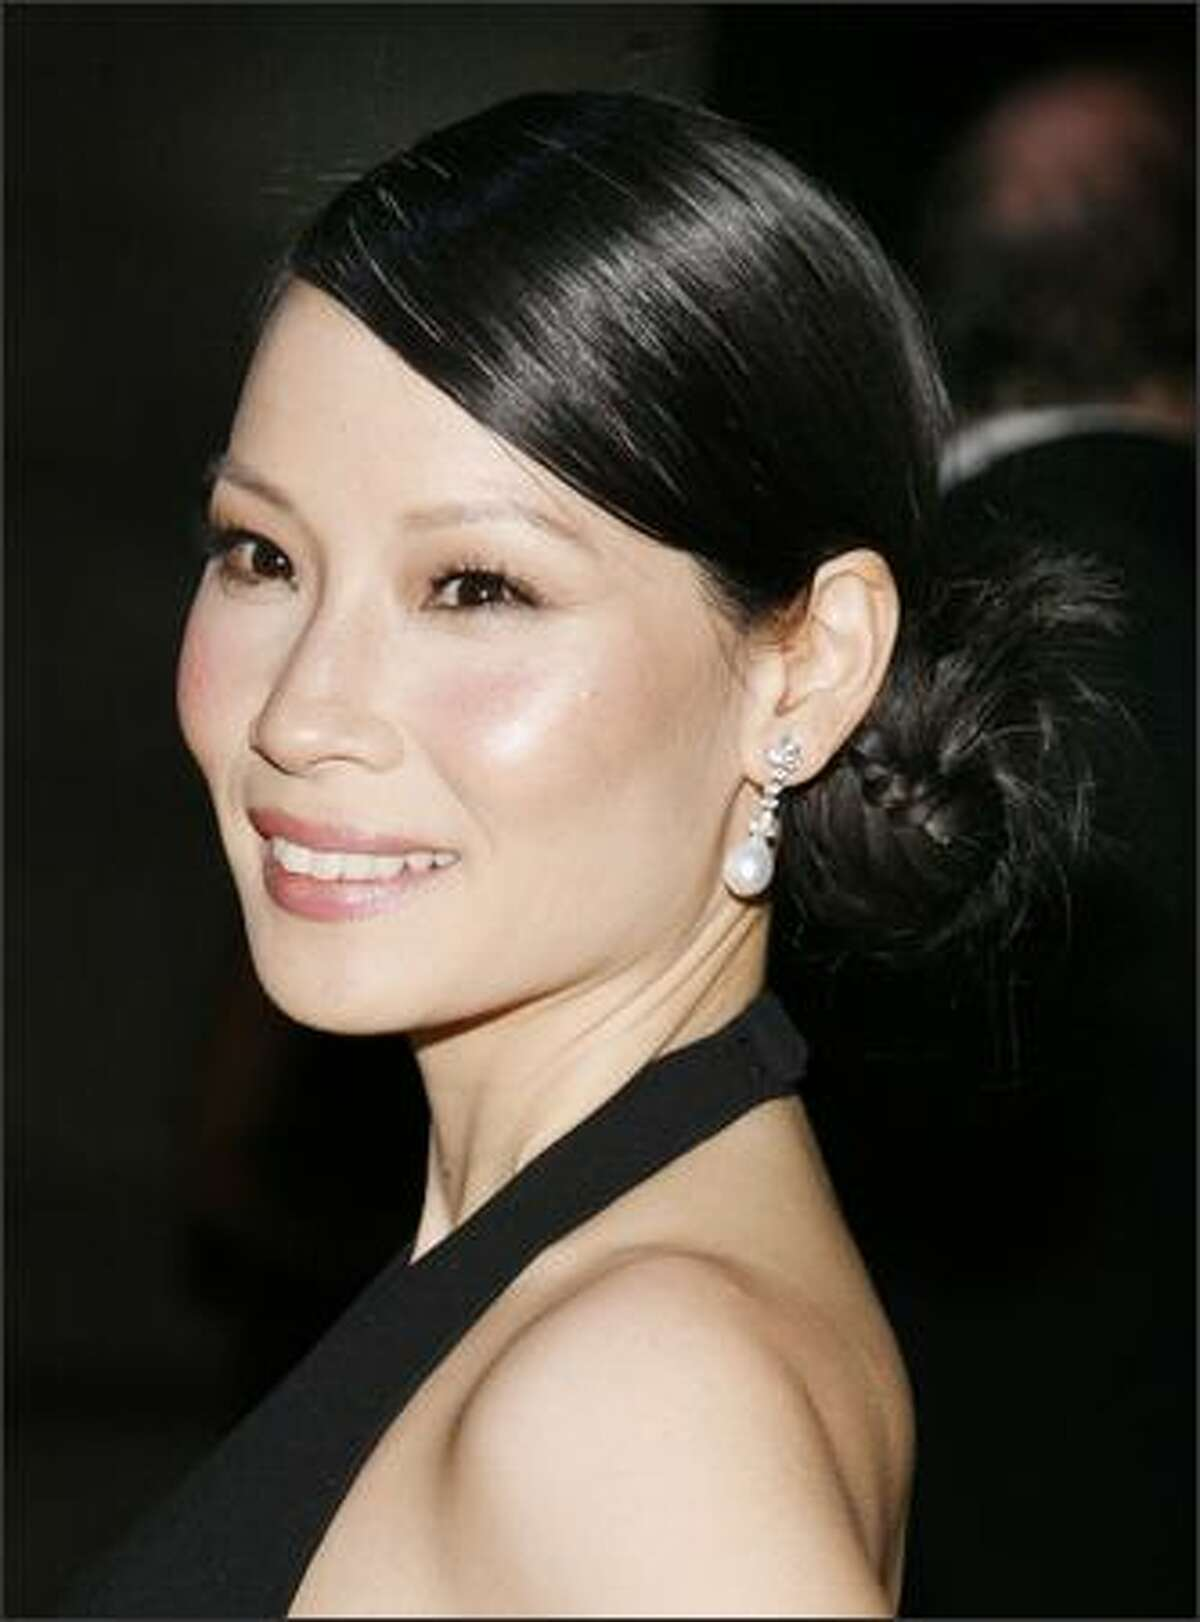 Actress Lucy Liu attends the 11th Annual ACE Awards at Cipriani in New York City.